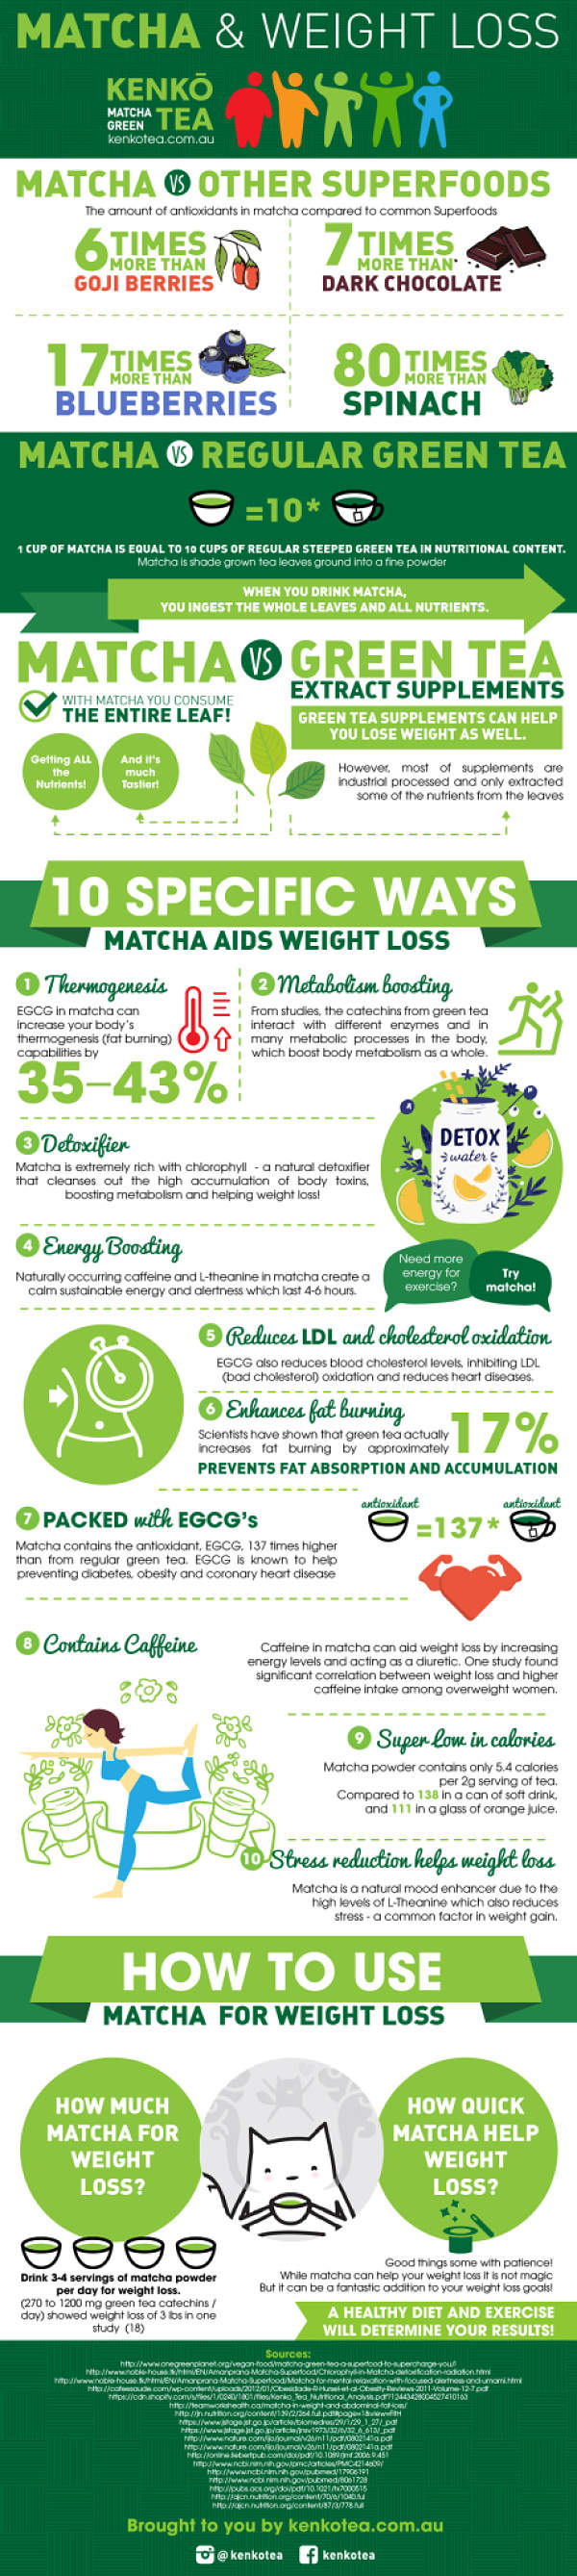 Matcha Green Tea health Benefits Infographic by Kenko tea